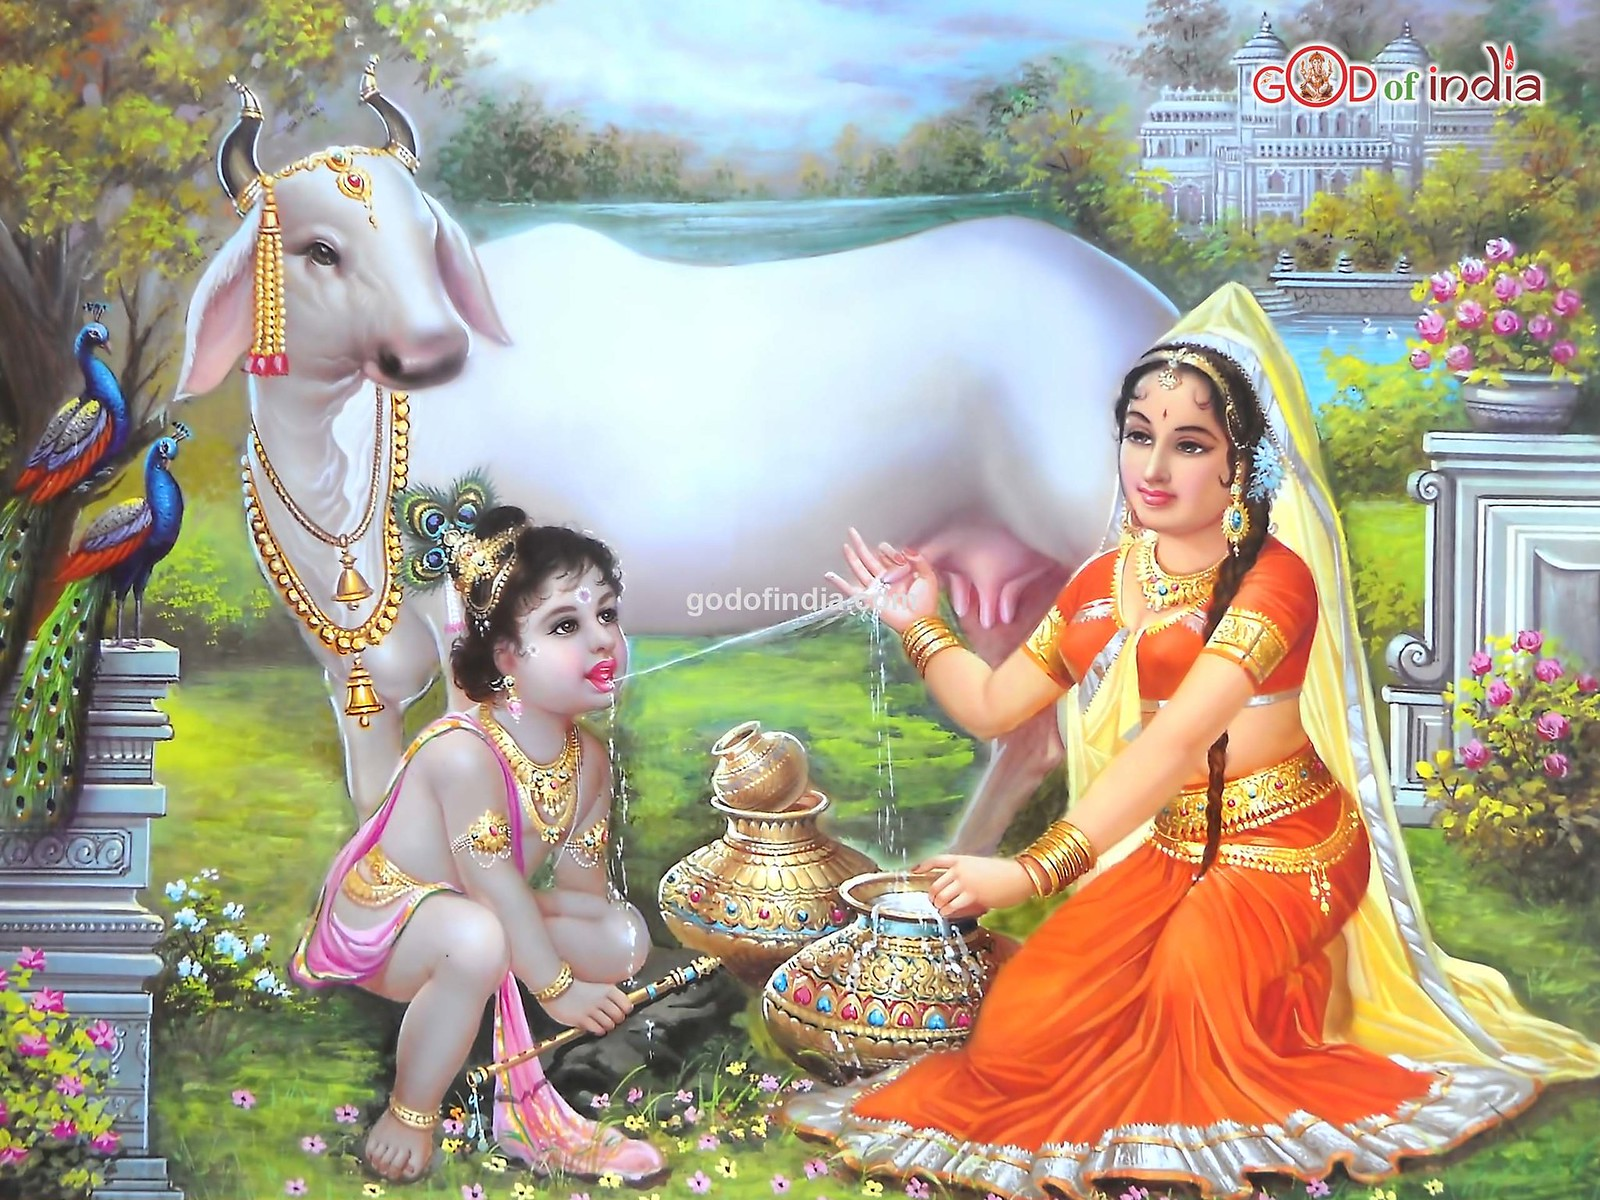 krishna-with-yashoda-drinking-cow-milk | Flickr - Photo Sharing!